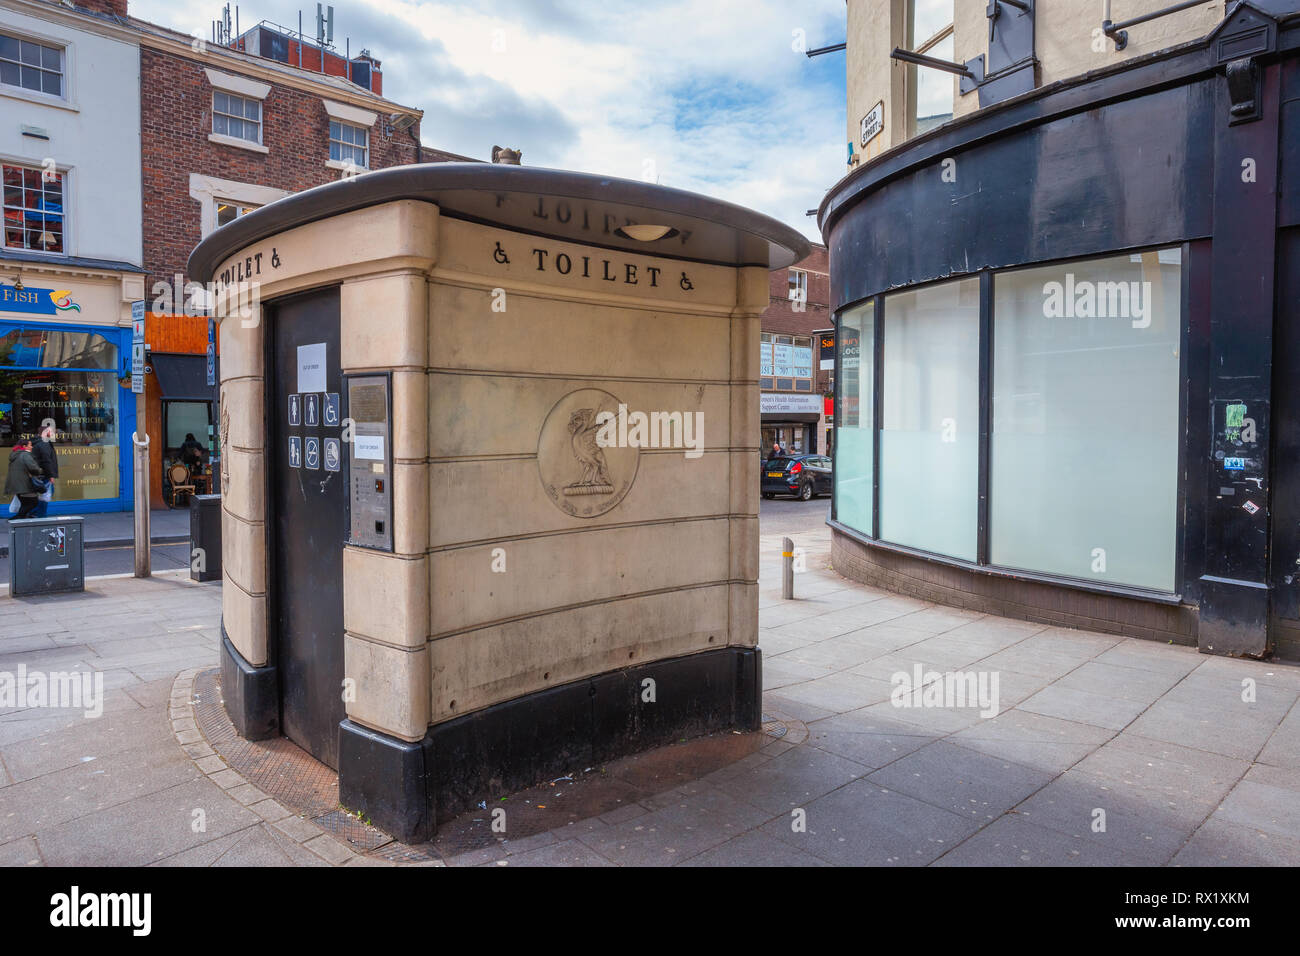 Liverpool, UK - May 16 2018: A public tolet for handicap on Berry Street - Stock Image